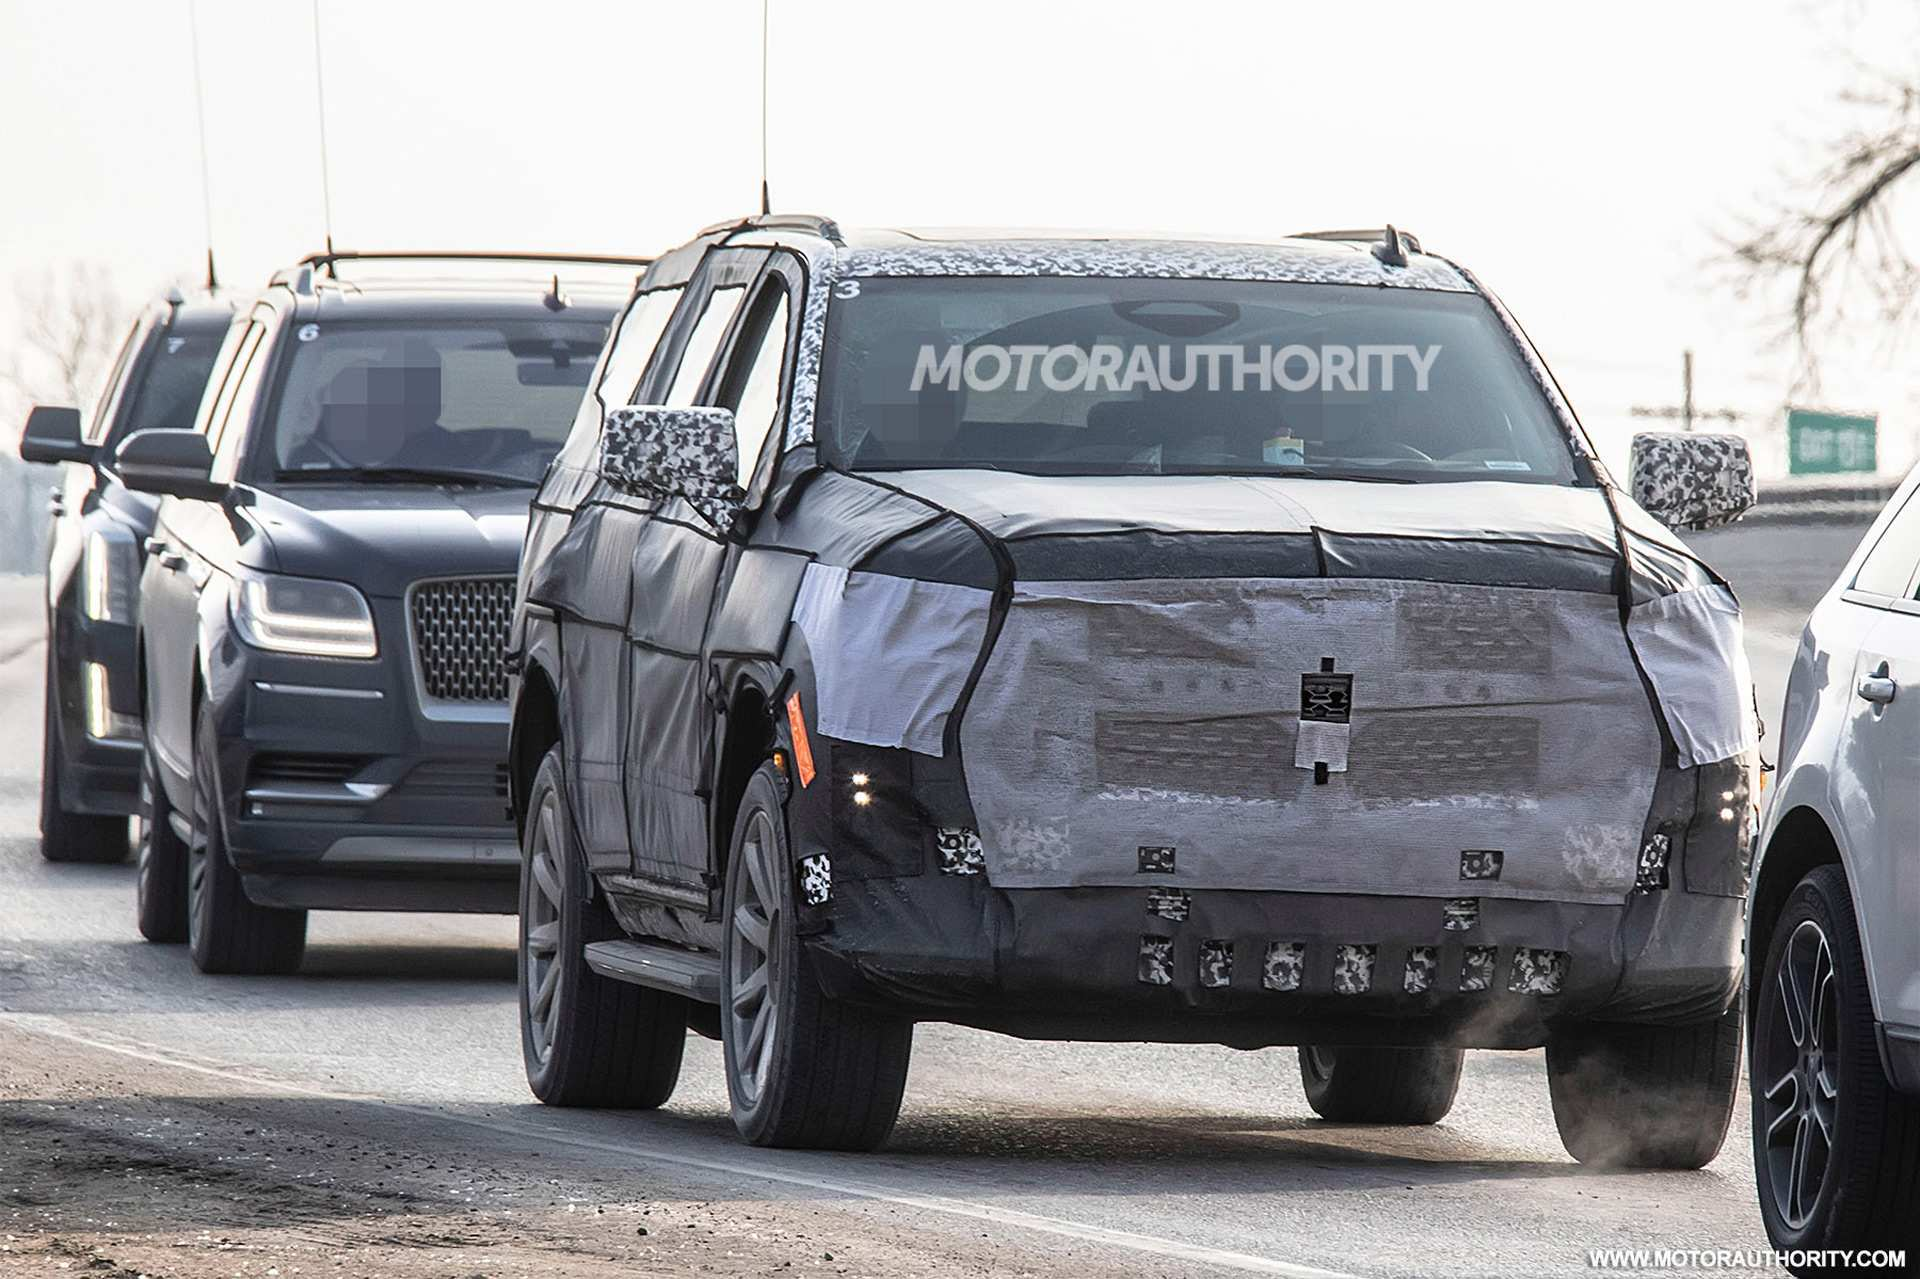 70 A 2020 Cadillac Escalade Luxury Suv Performance And New Engine